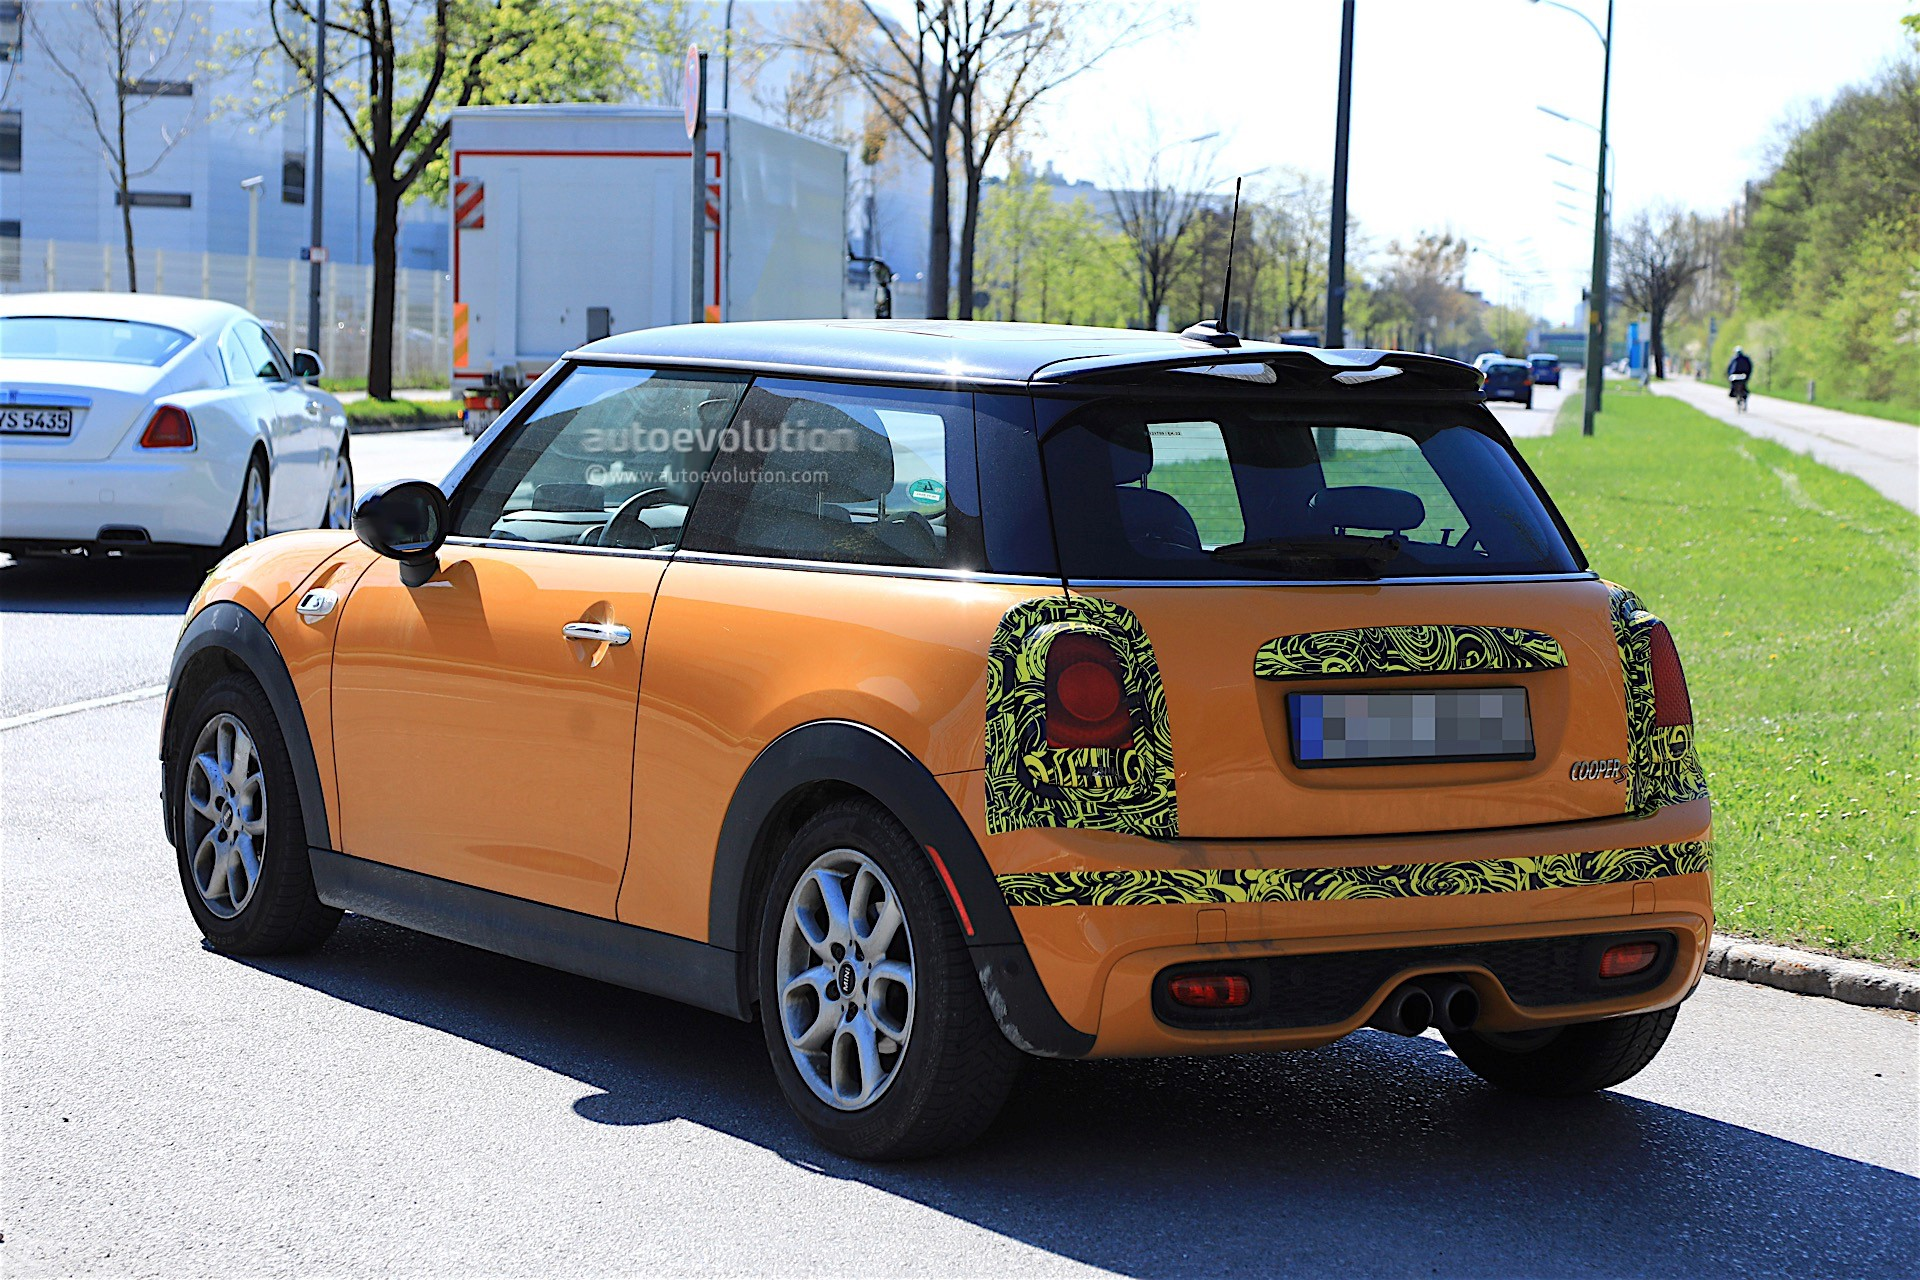 2018 mini cooper s facelift spotted testing it has minor. Black Bedroom Furniture Sets. Home Design Ideas